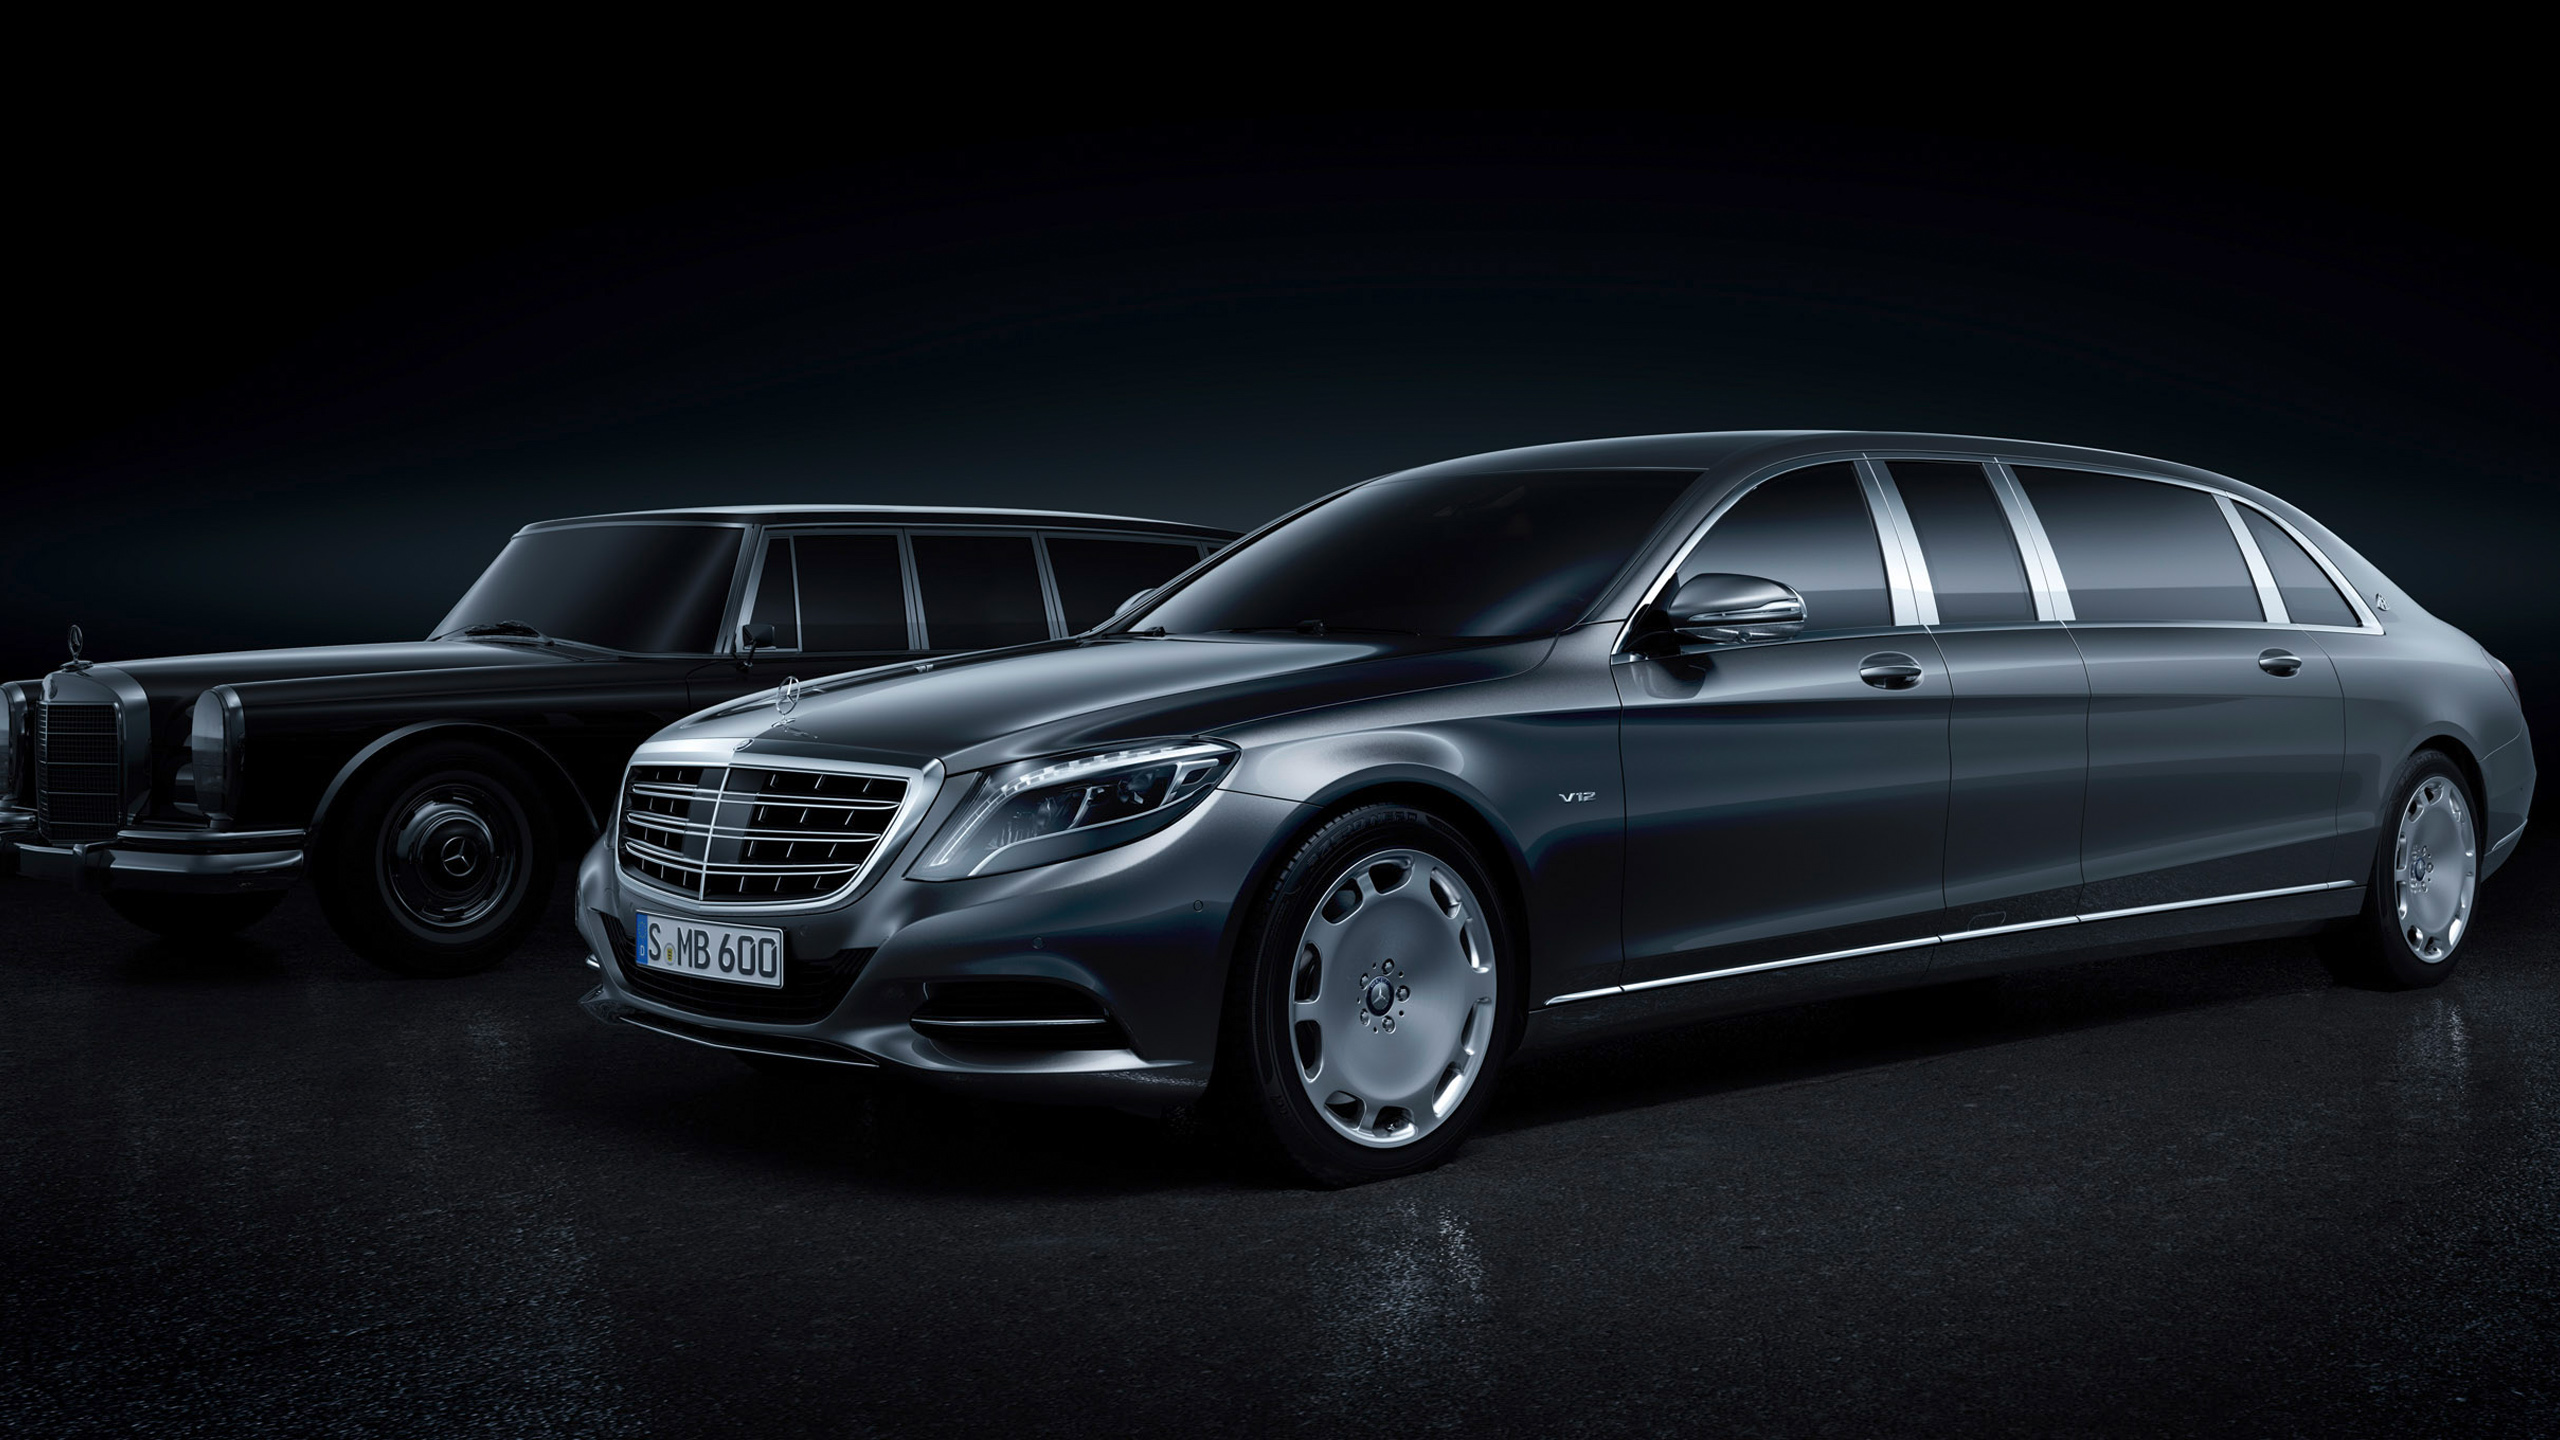 Mercedes pullman submited images